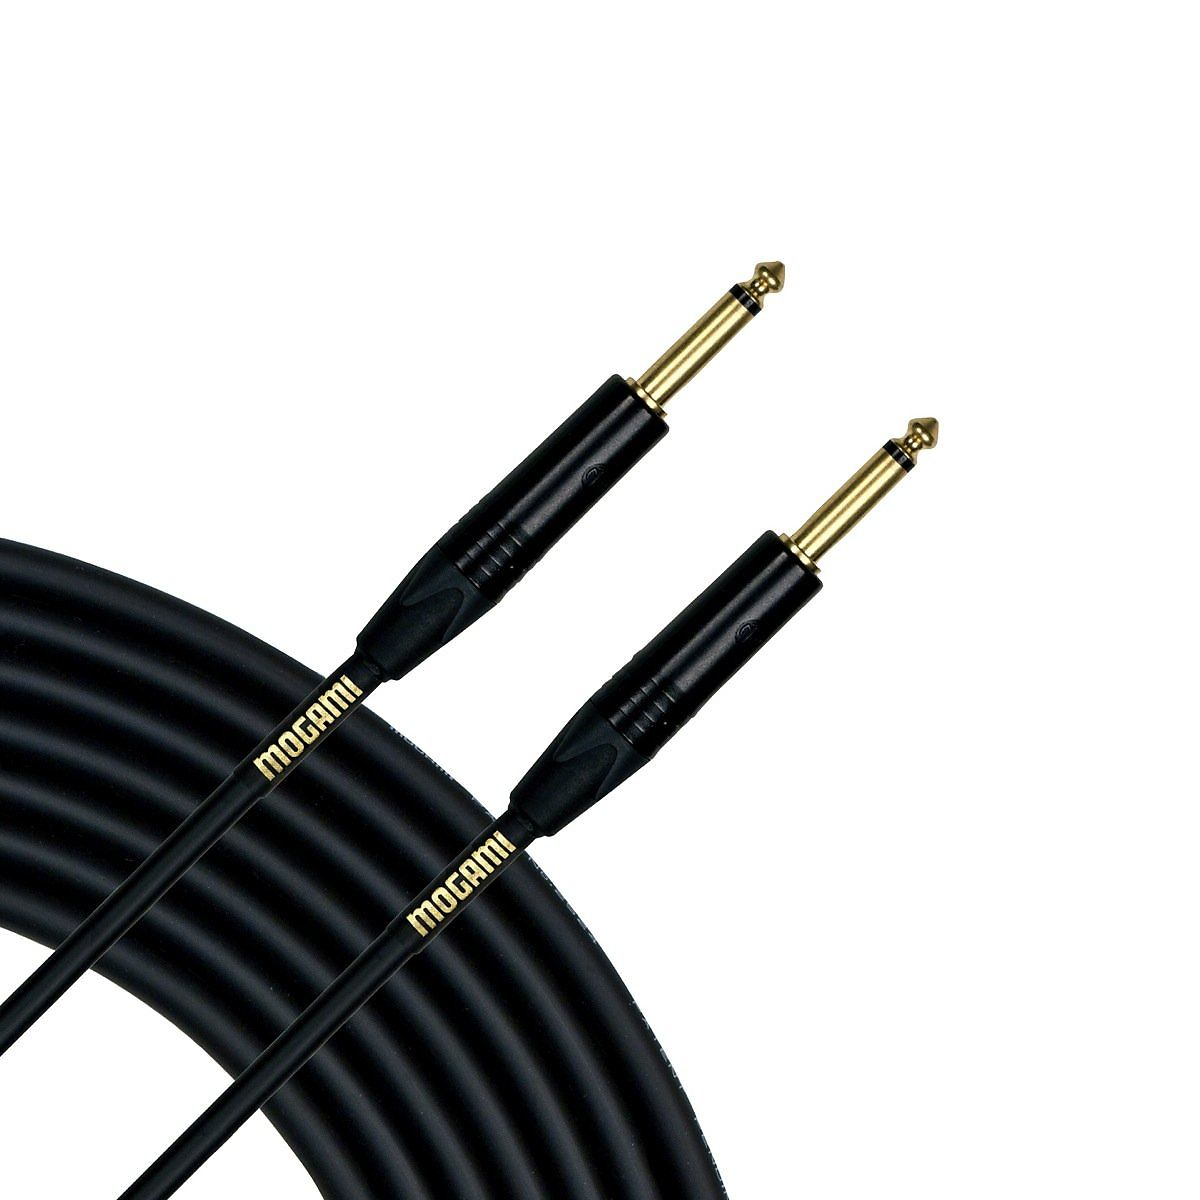 Mogami Gold Guitar/Instrument Cable, 10 Foot